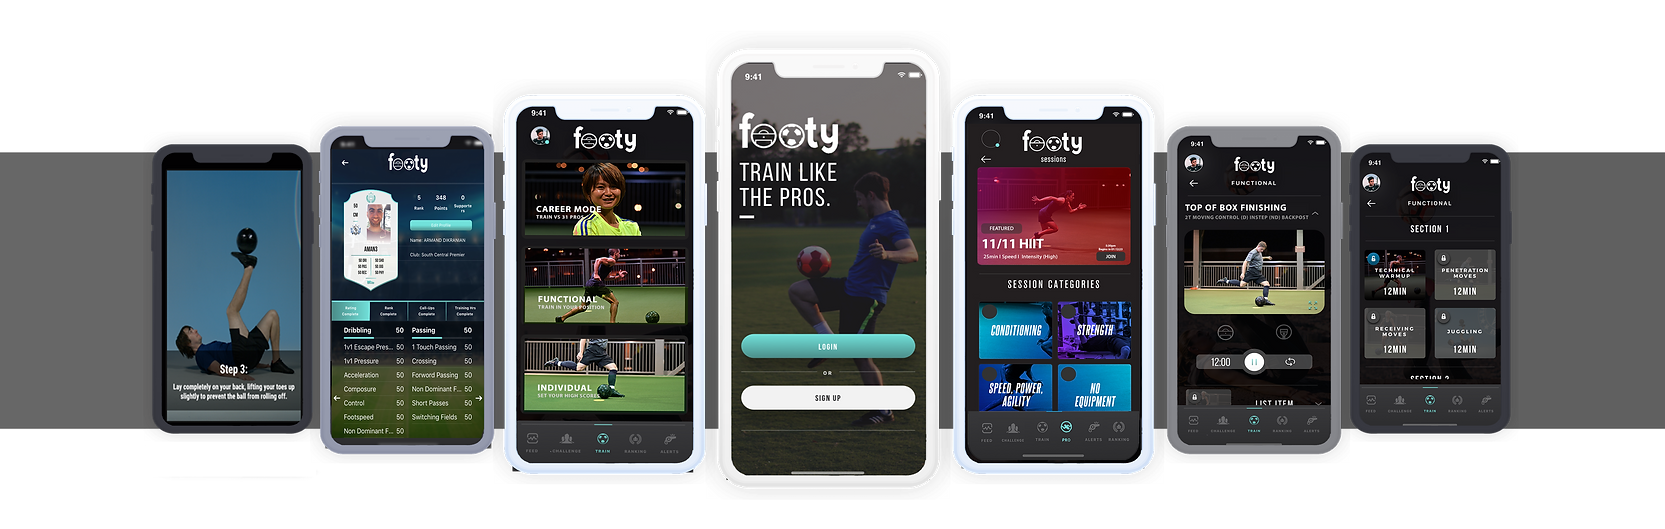 Footy_Homepage_Seven_pro copy.png